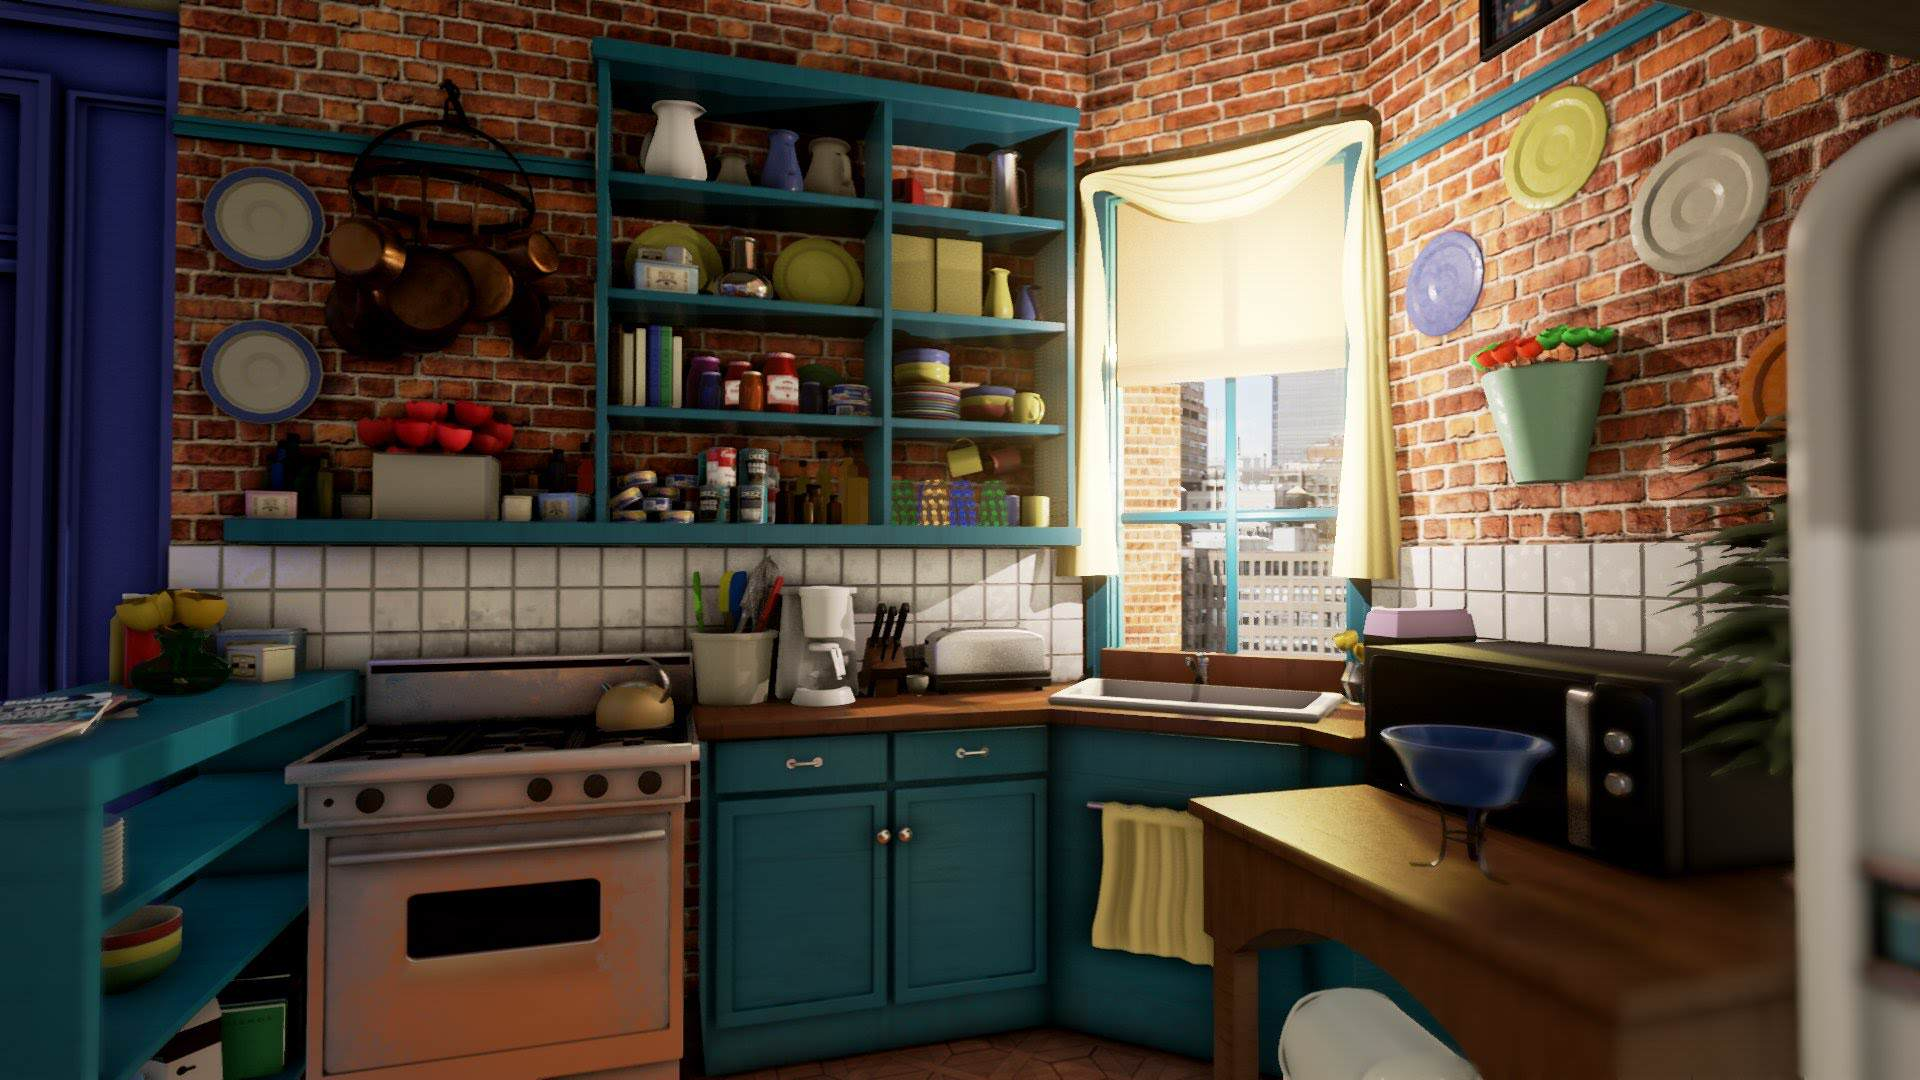 maxresdefault 1 2 Iconic Friends Location Recreated In Unreal Engine 4